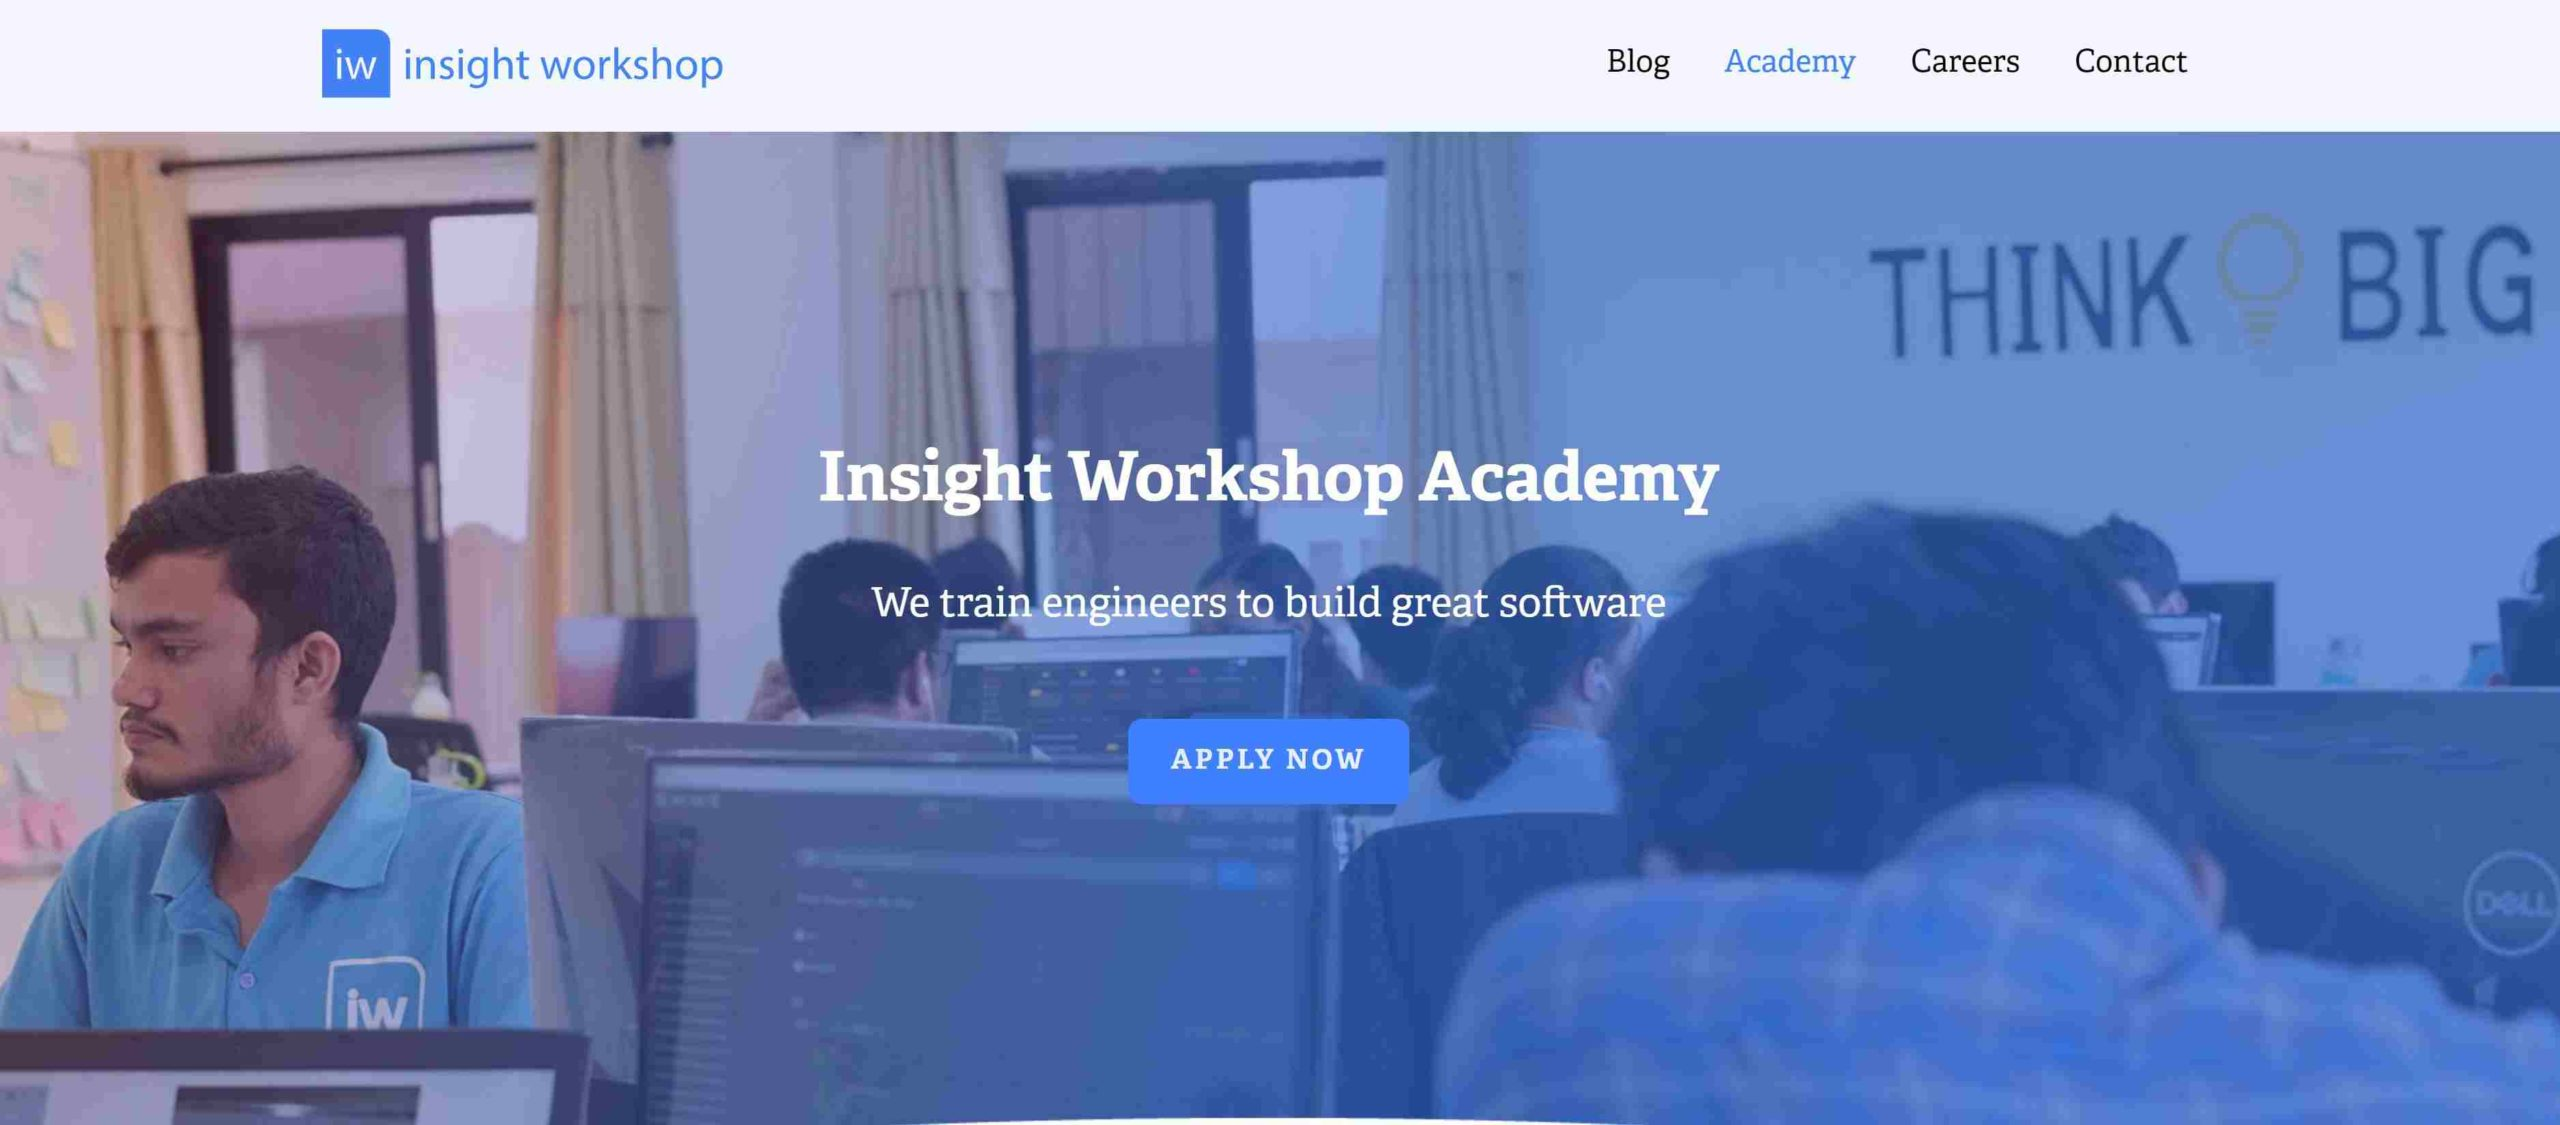 Insight Workshop